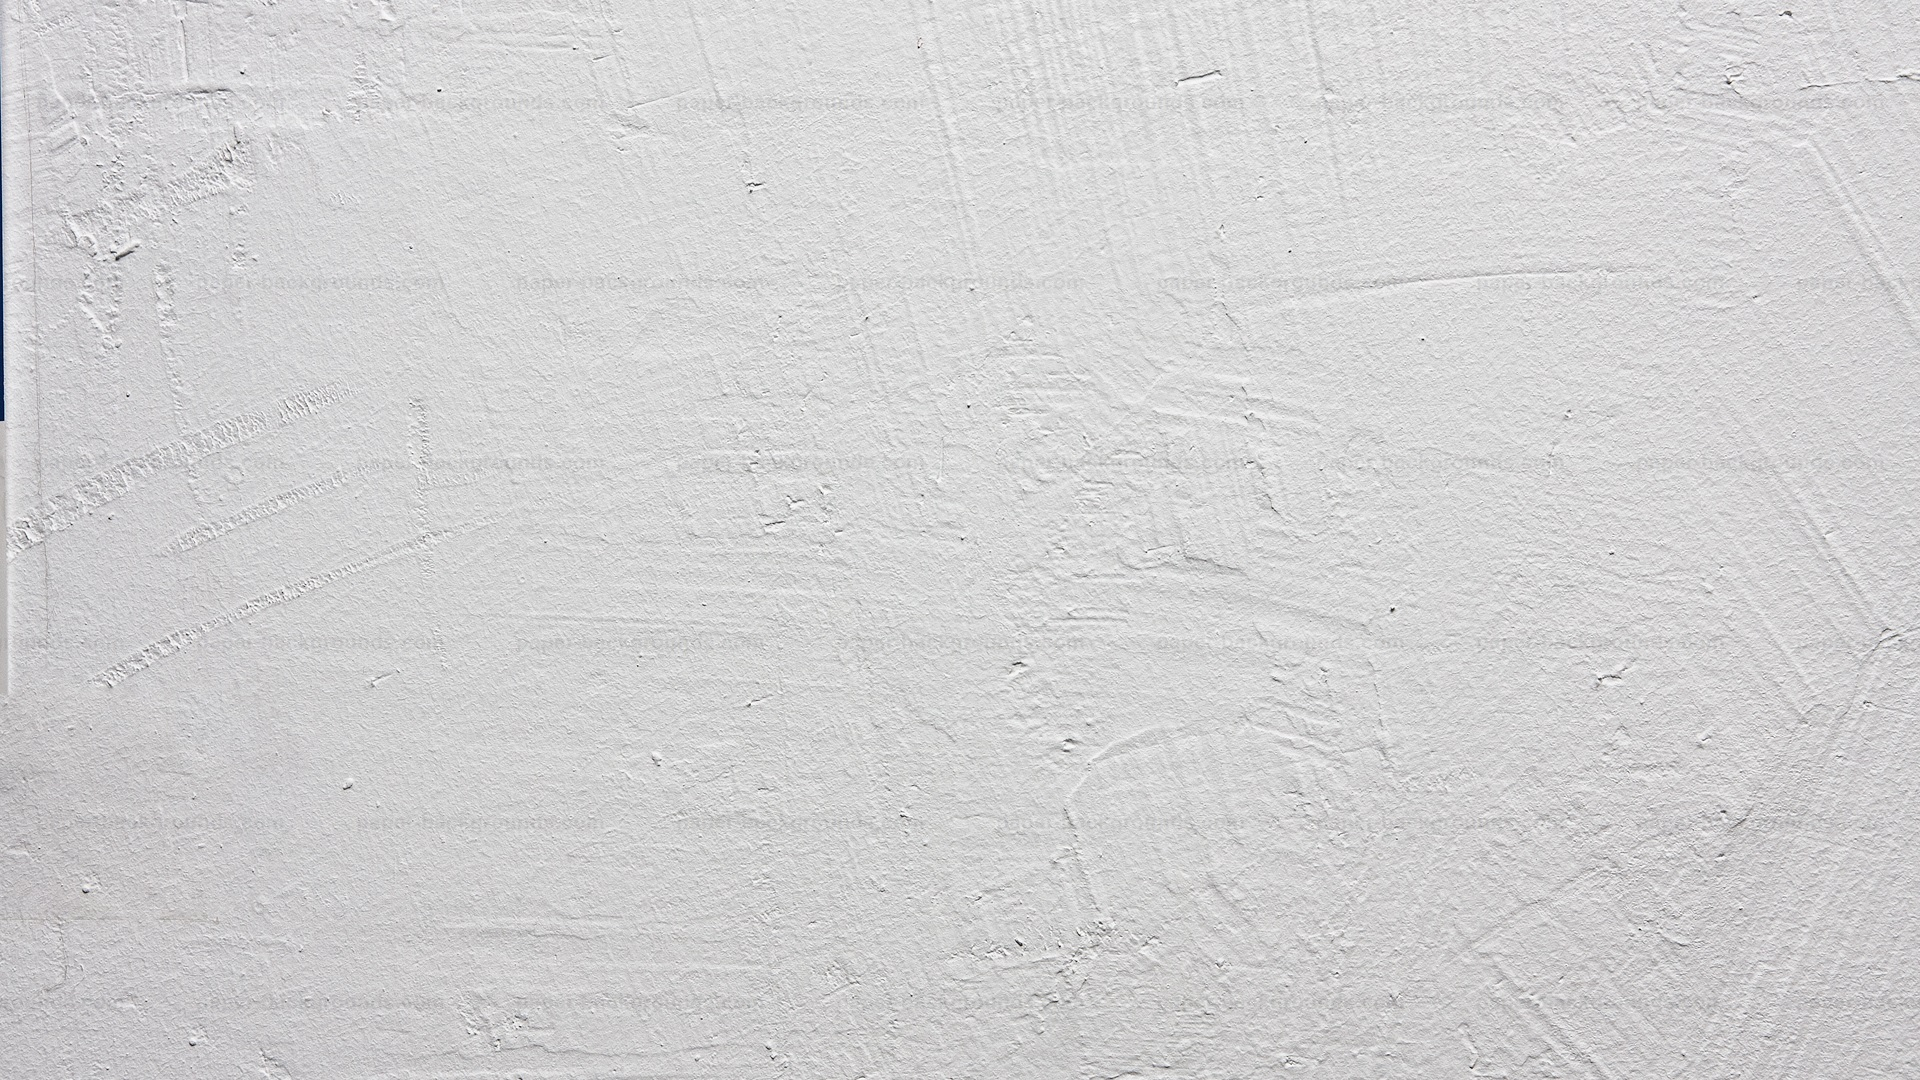 paper backgrounds com white concrete wall te 2 white concrete wall 1920x1080